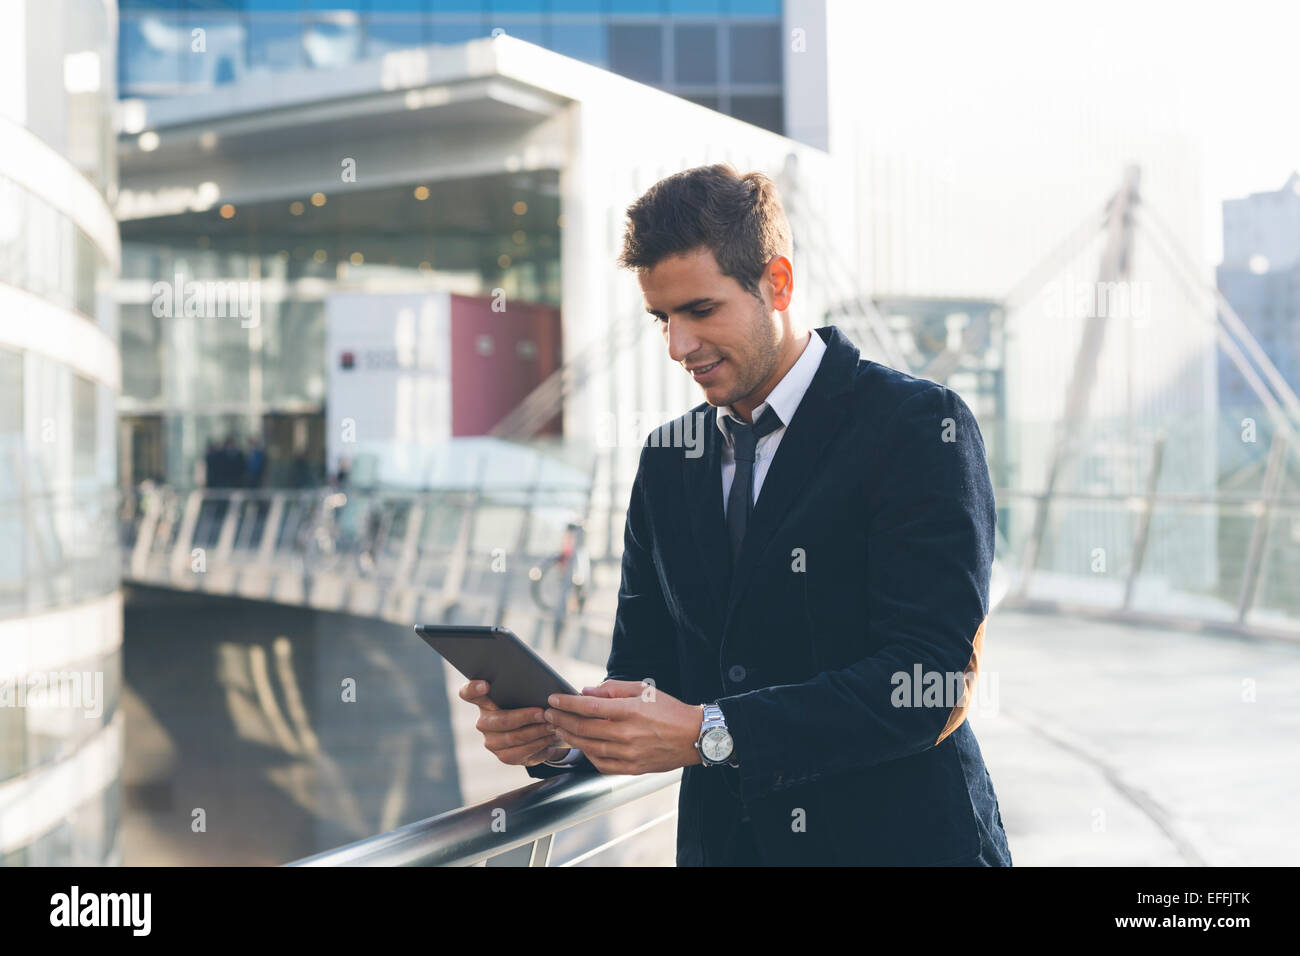 Businessman using a digital tablet Photo Stock